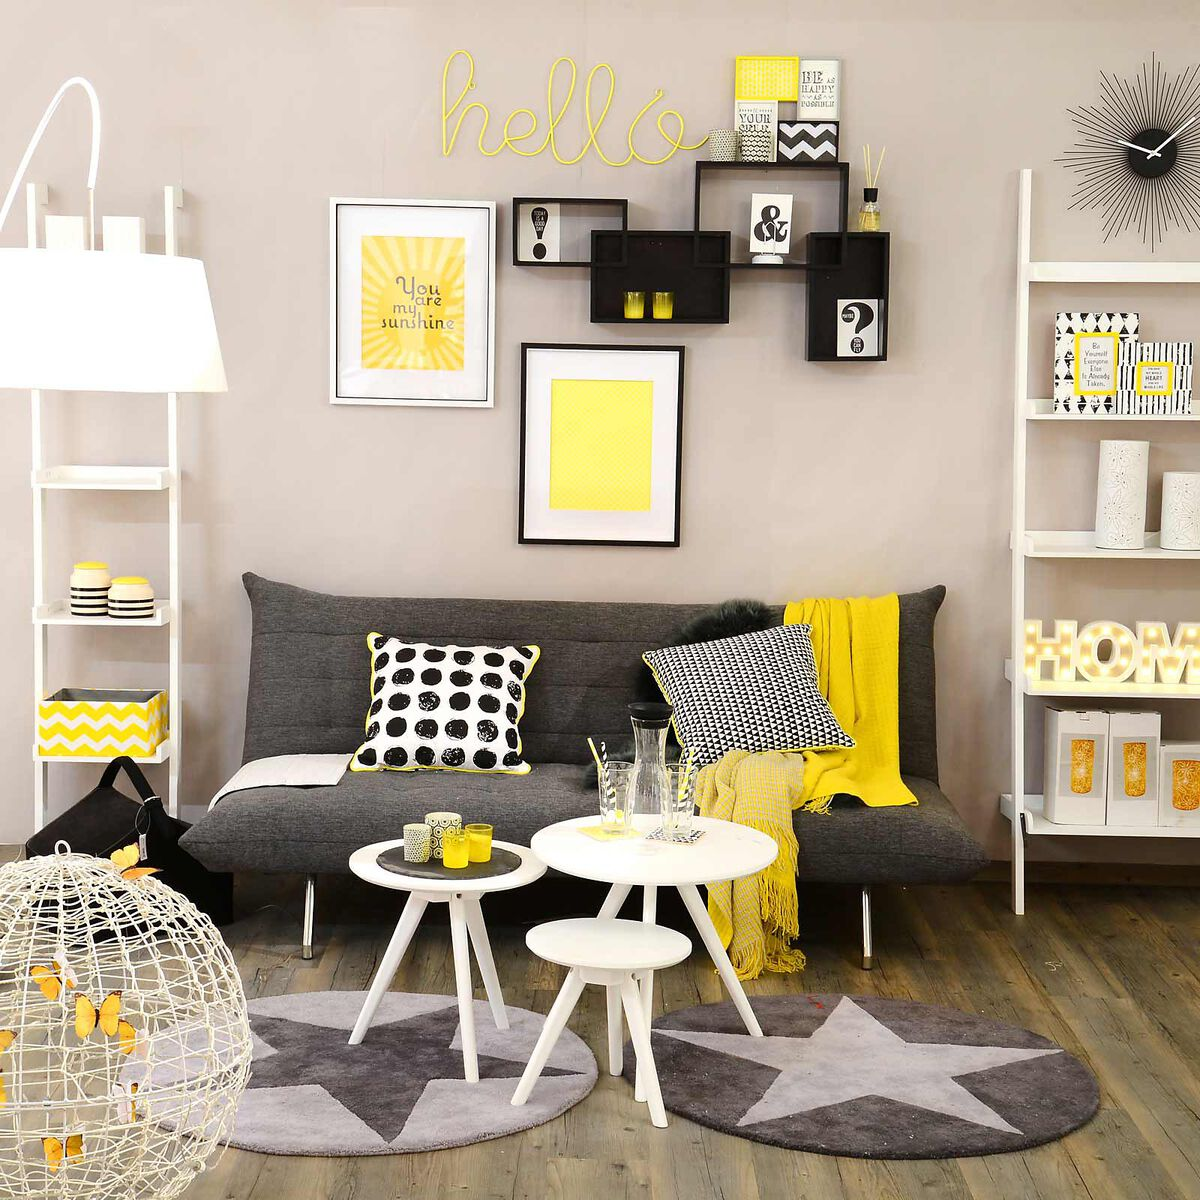 3er set beistelltisch mischholz weiss depot de. Black Bedroom Furniture Sets. Home Design Ideas